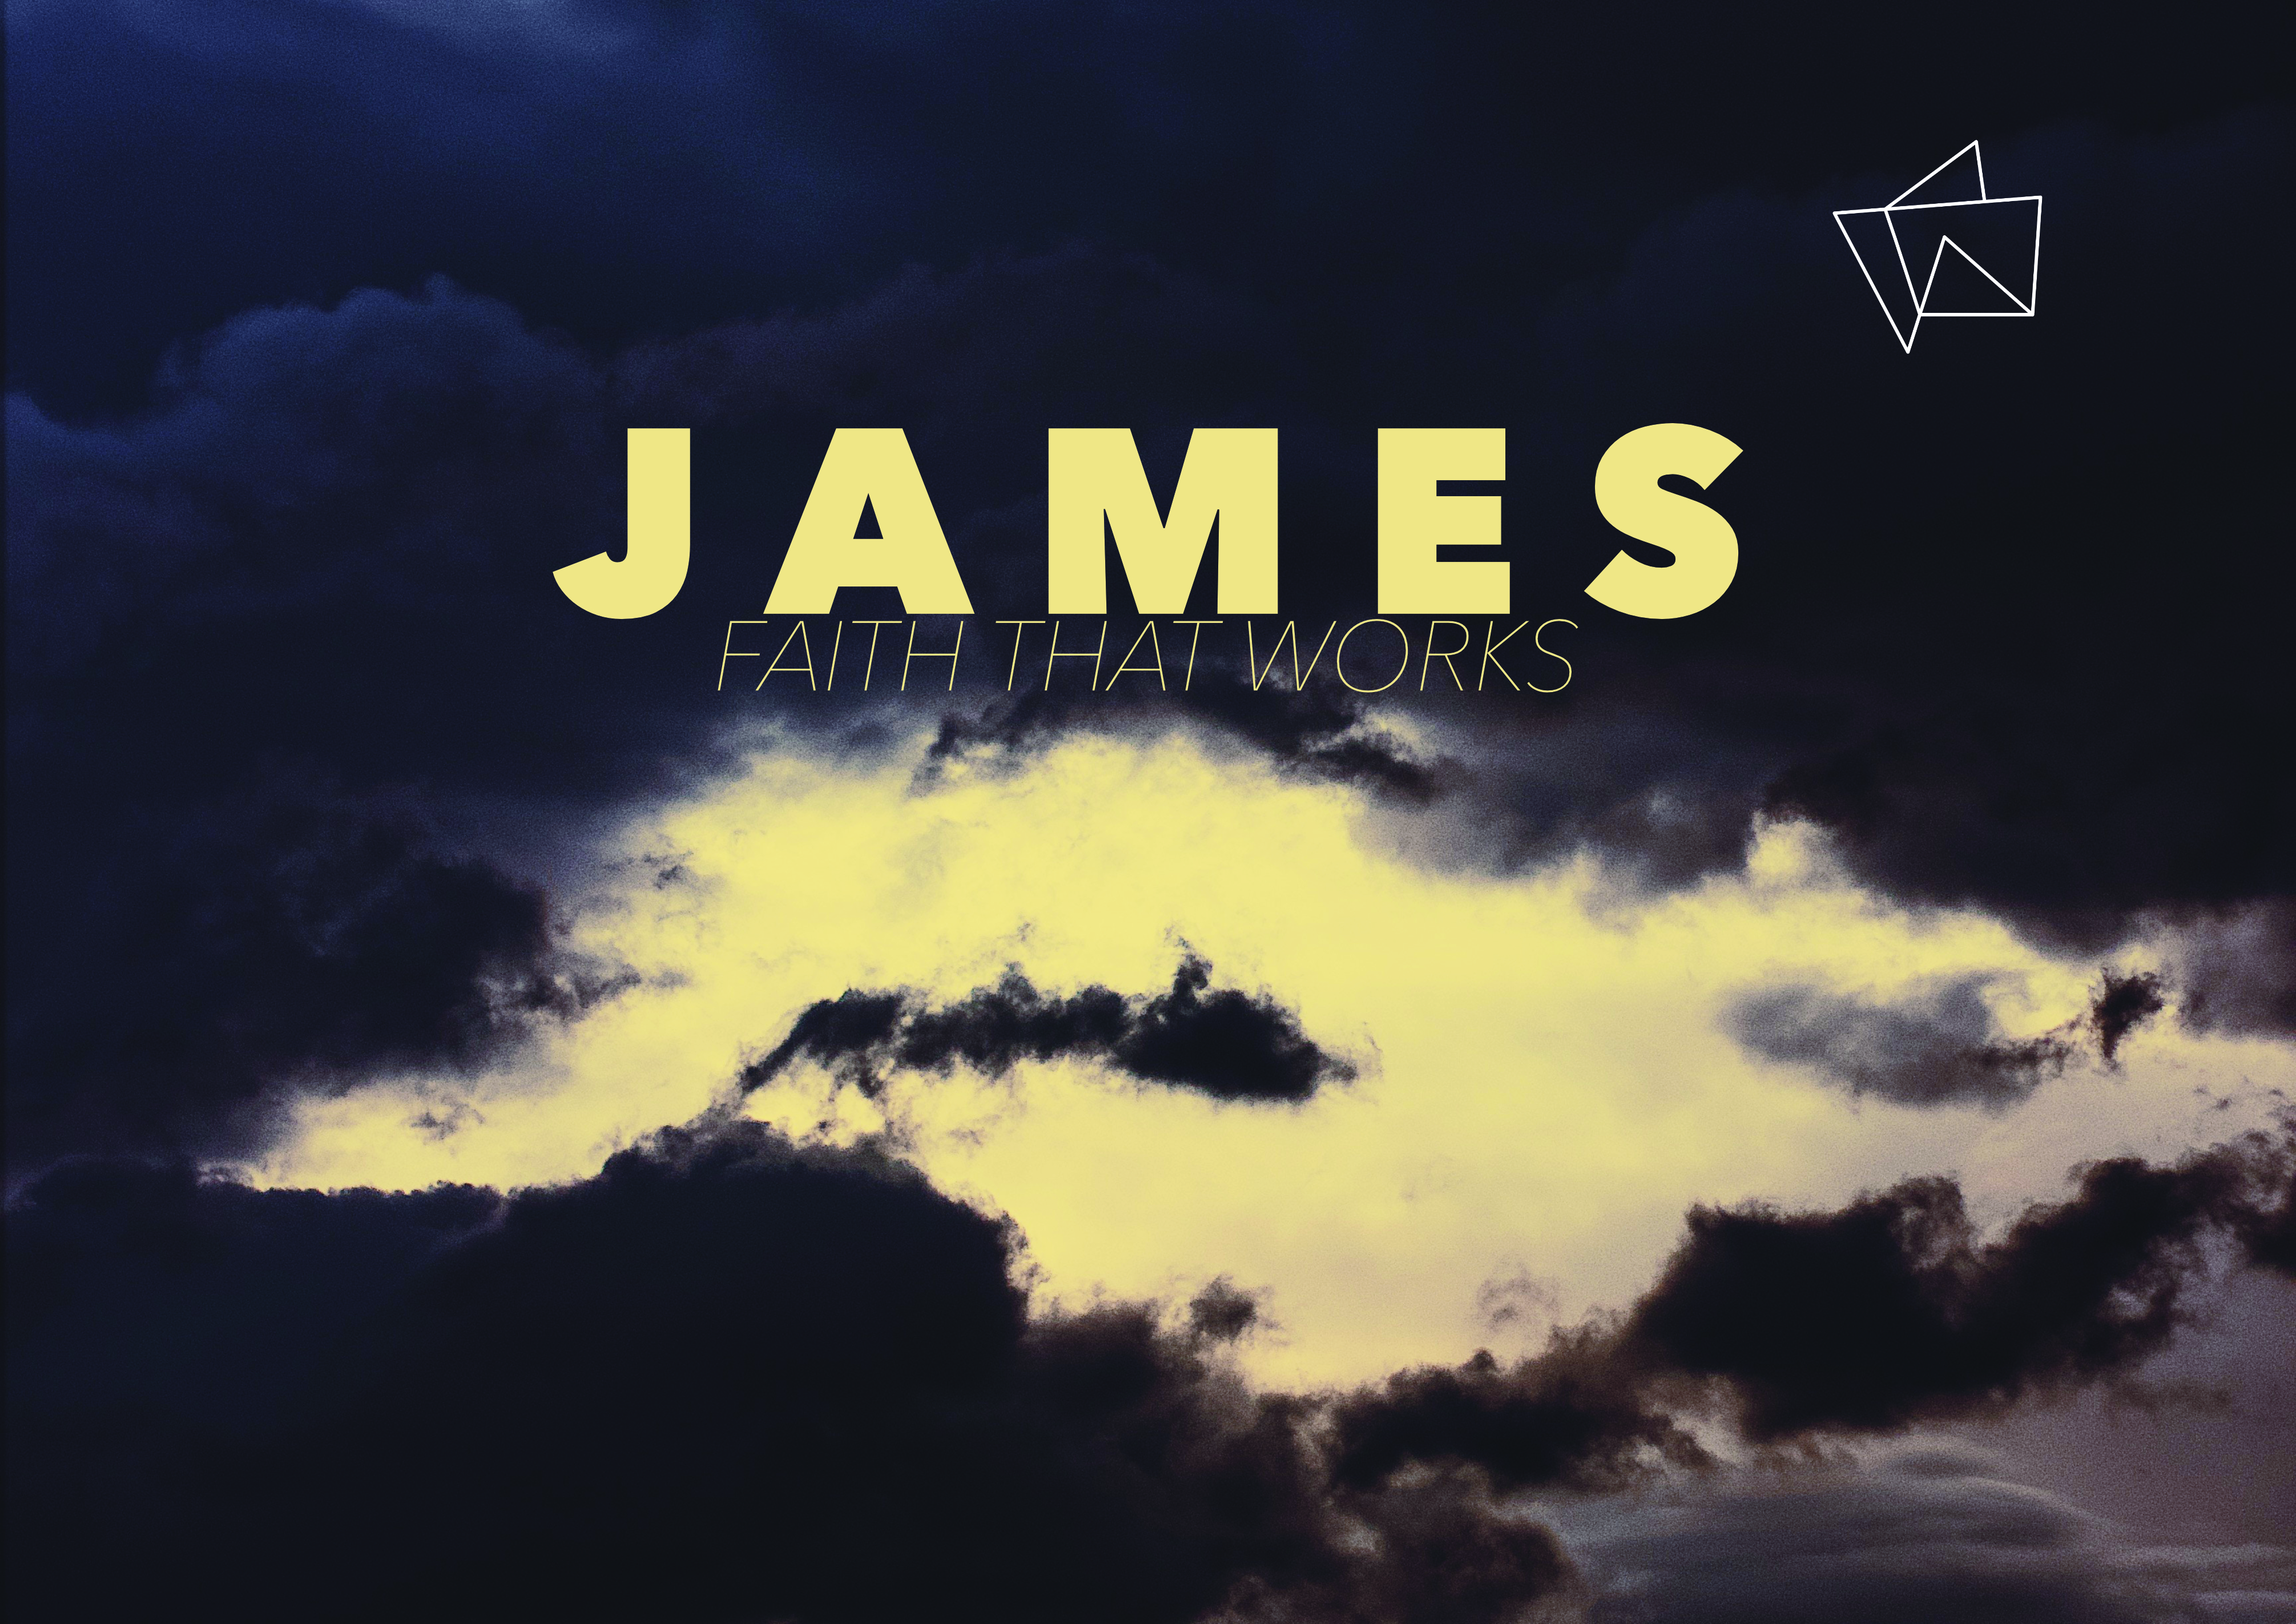 James. Faith That Works